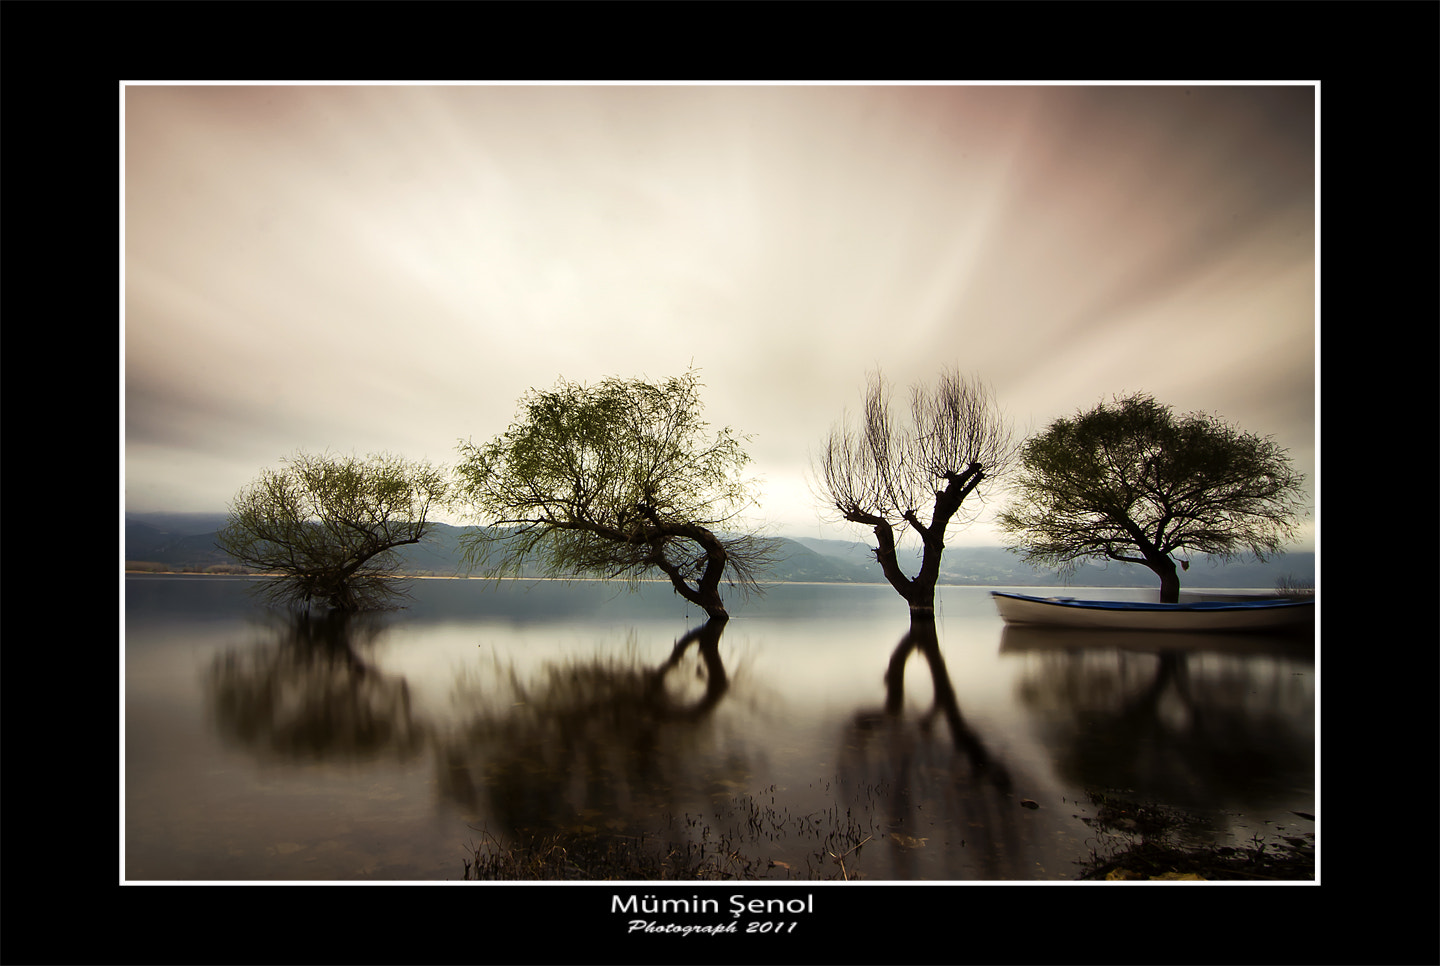 Photograph 270 Seconds Golyazi Tale by Mumin Senol on 500px